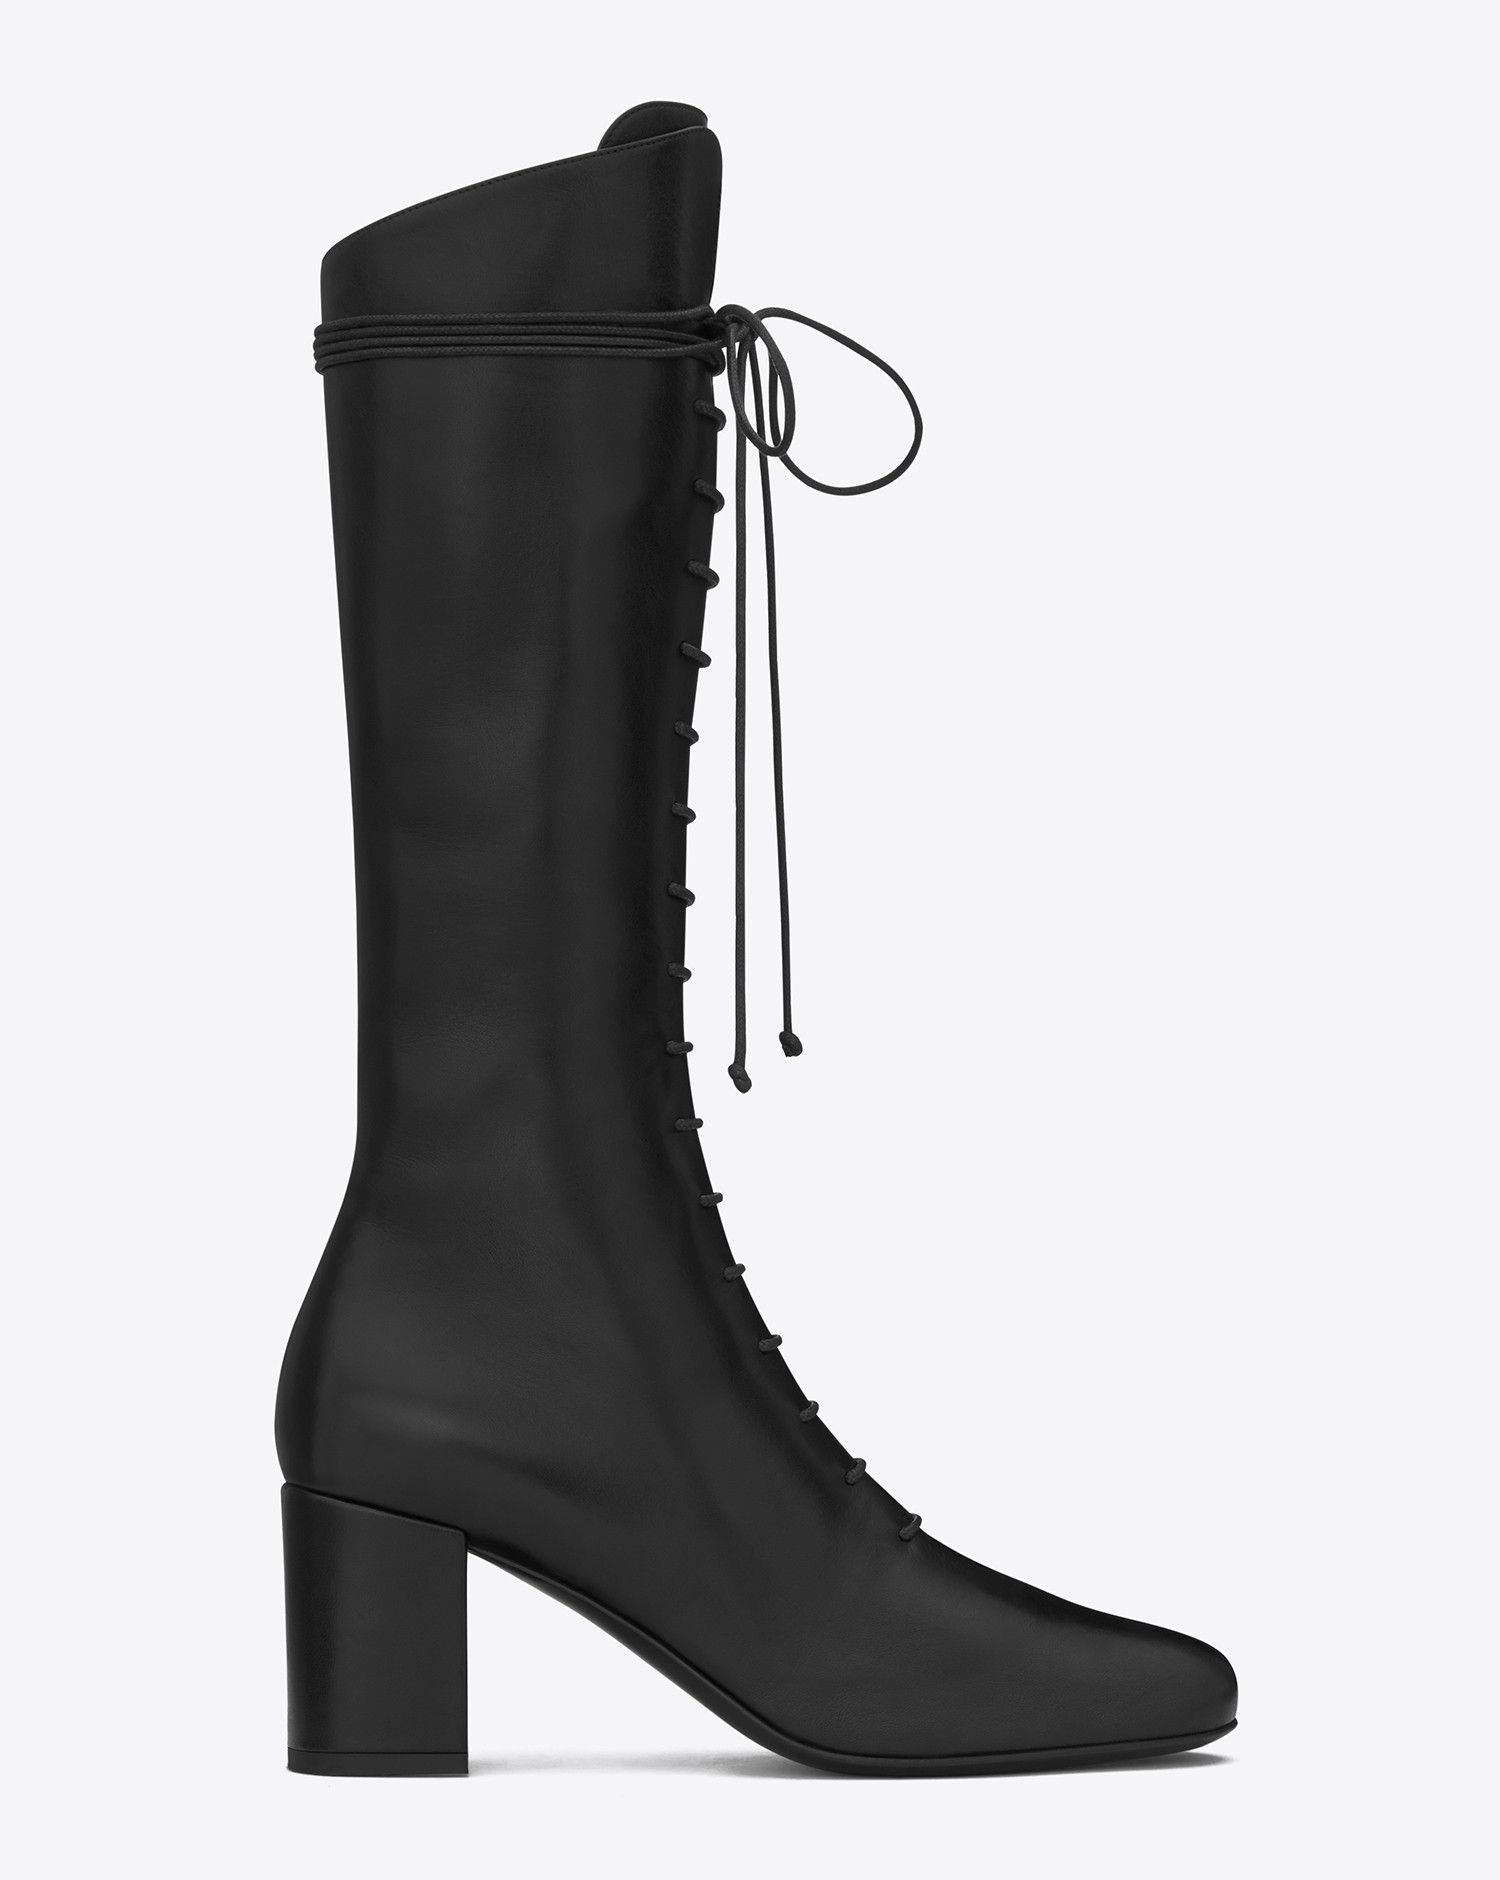 buy online 0fd35 f377f Saint Laurent BABIES 70 Lace Up BOOT IN Black Leather | ysl ...